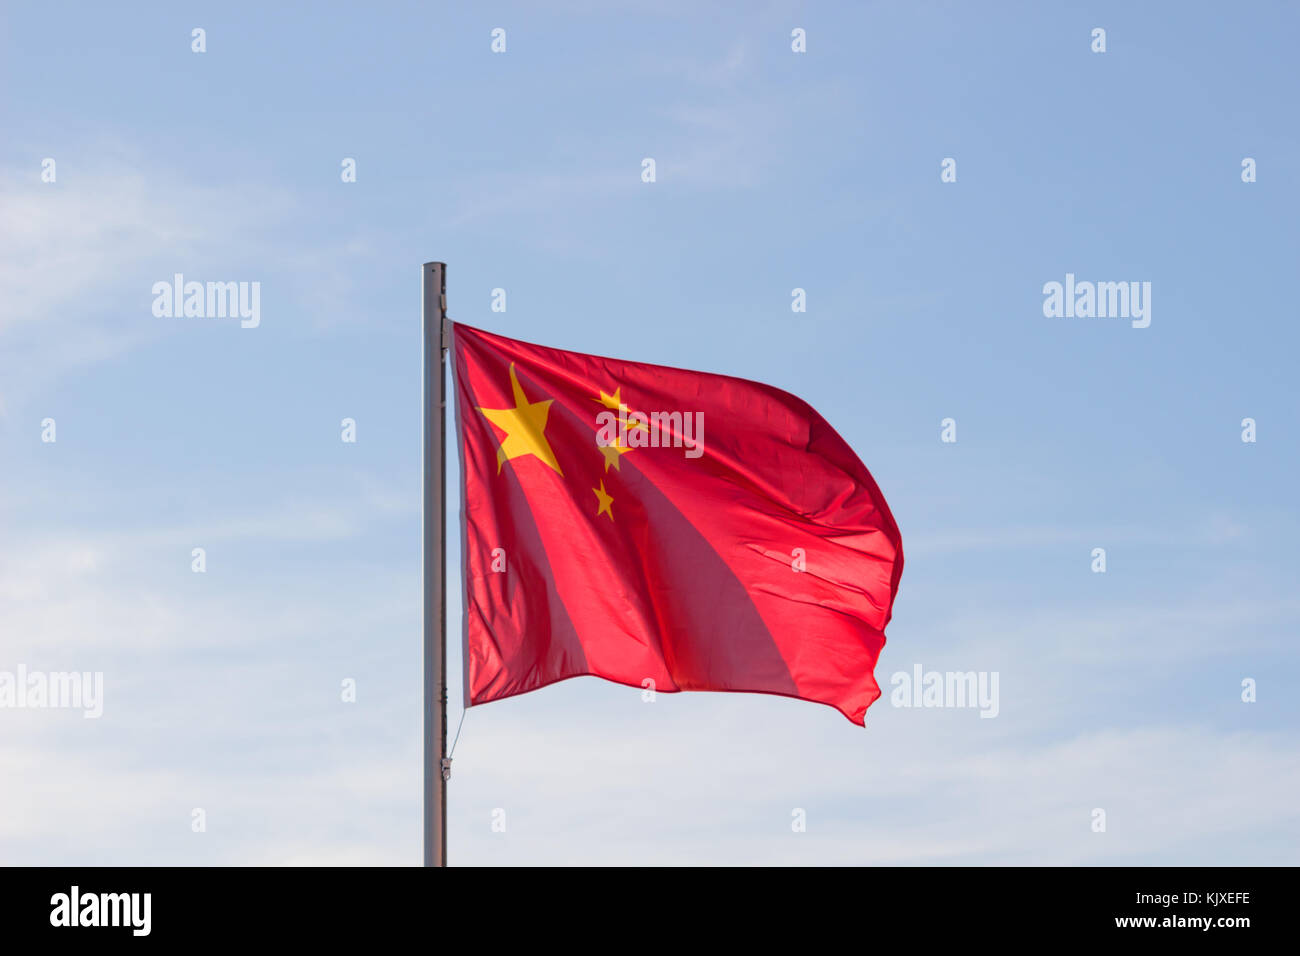 red flag with yellow star stock photos & red flag with yellow star